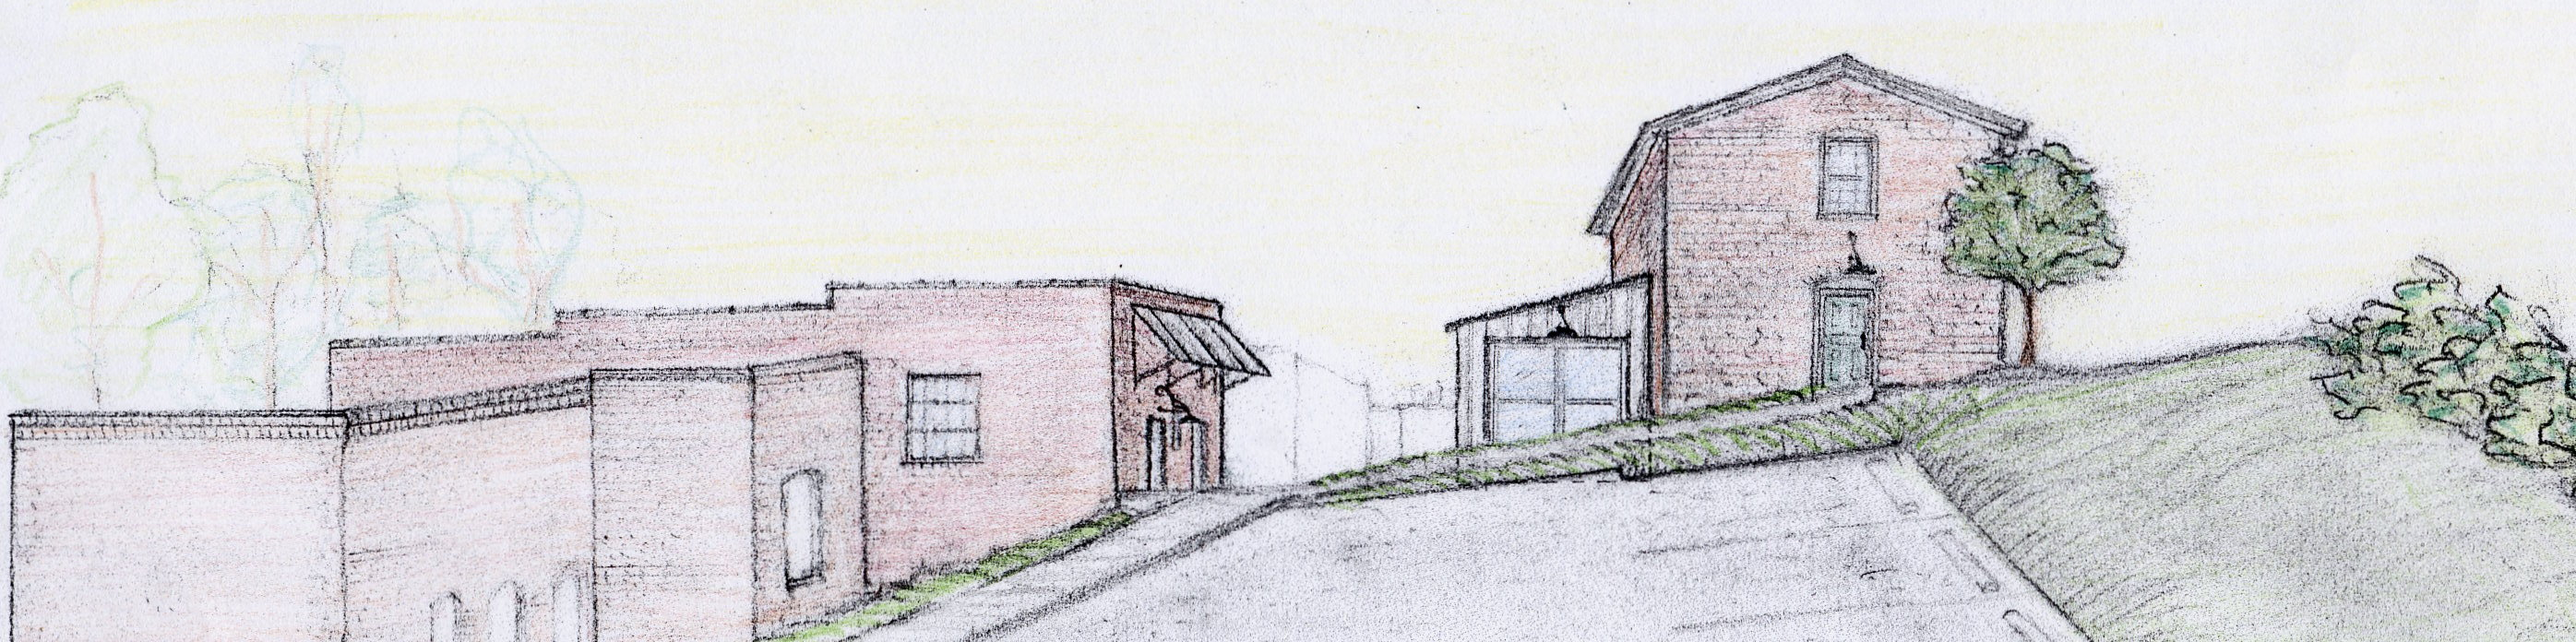 Conceptual drawing for Phase 1